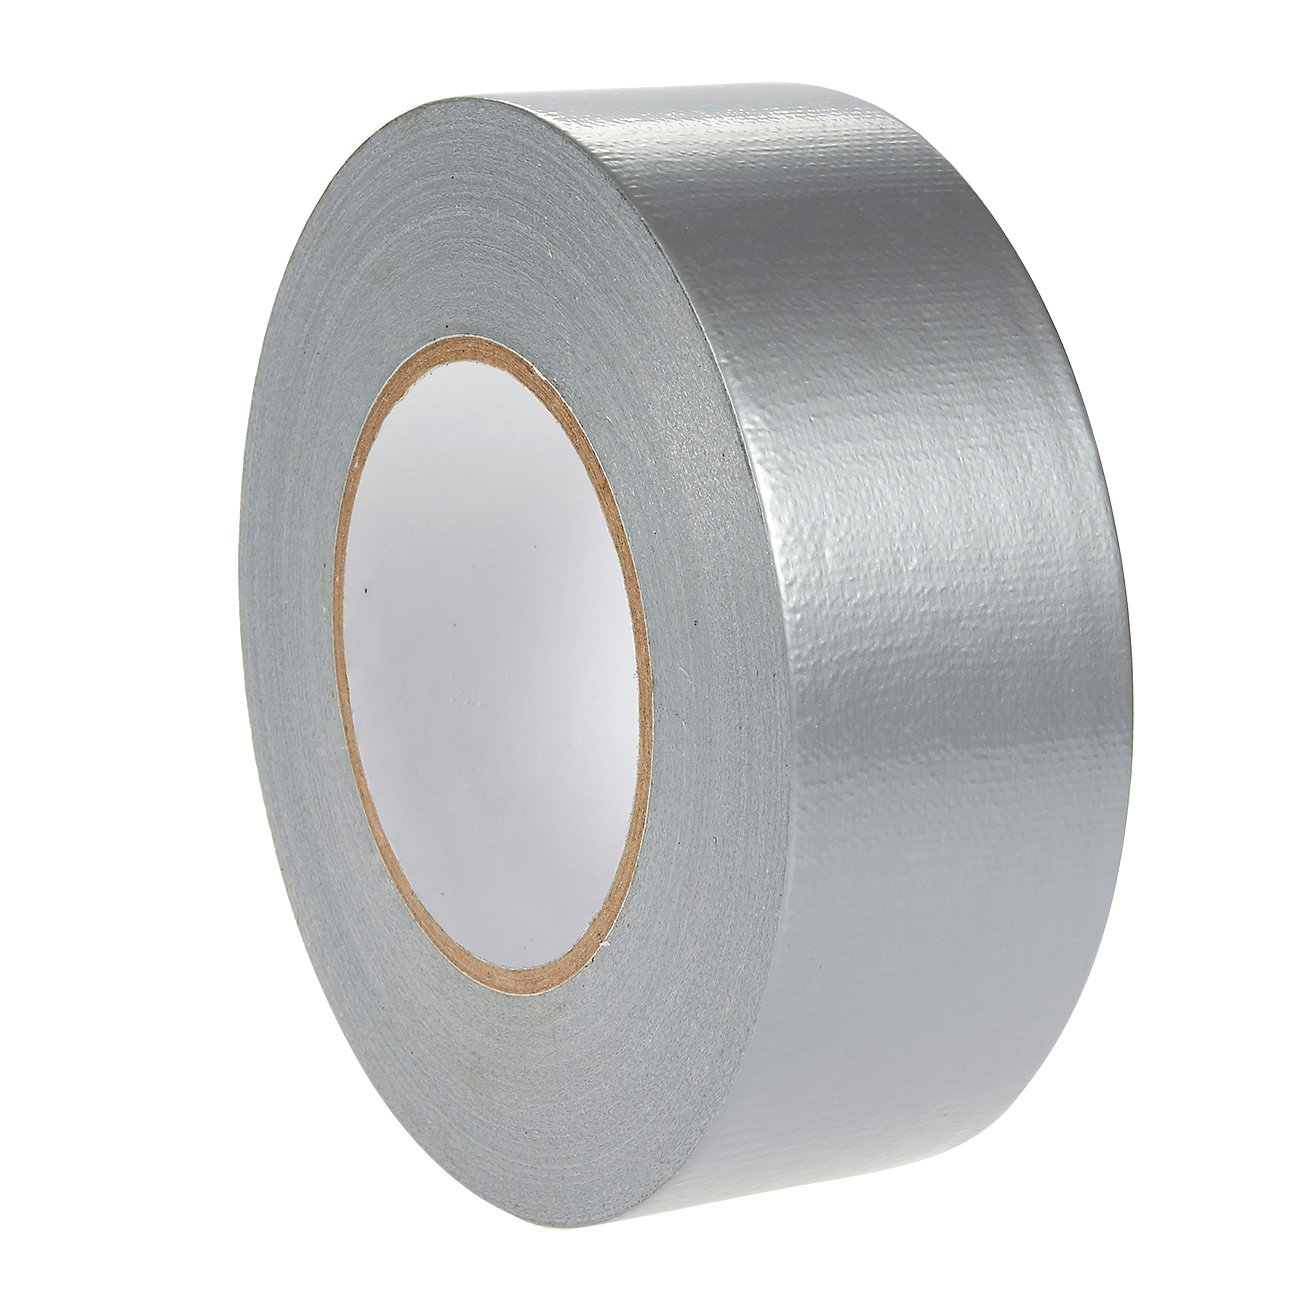 1 Piece Duct Tape - All-Purpose Multi-Surface Silver Adhesive Duct Tape for Marking, Decoration, Repair Work - 60 yards